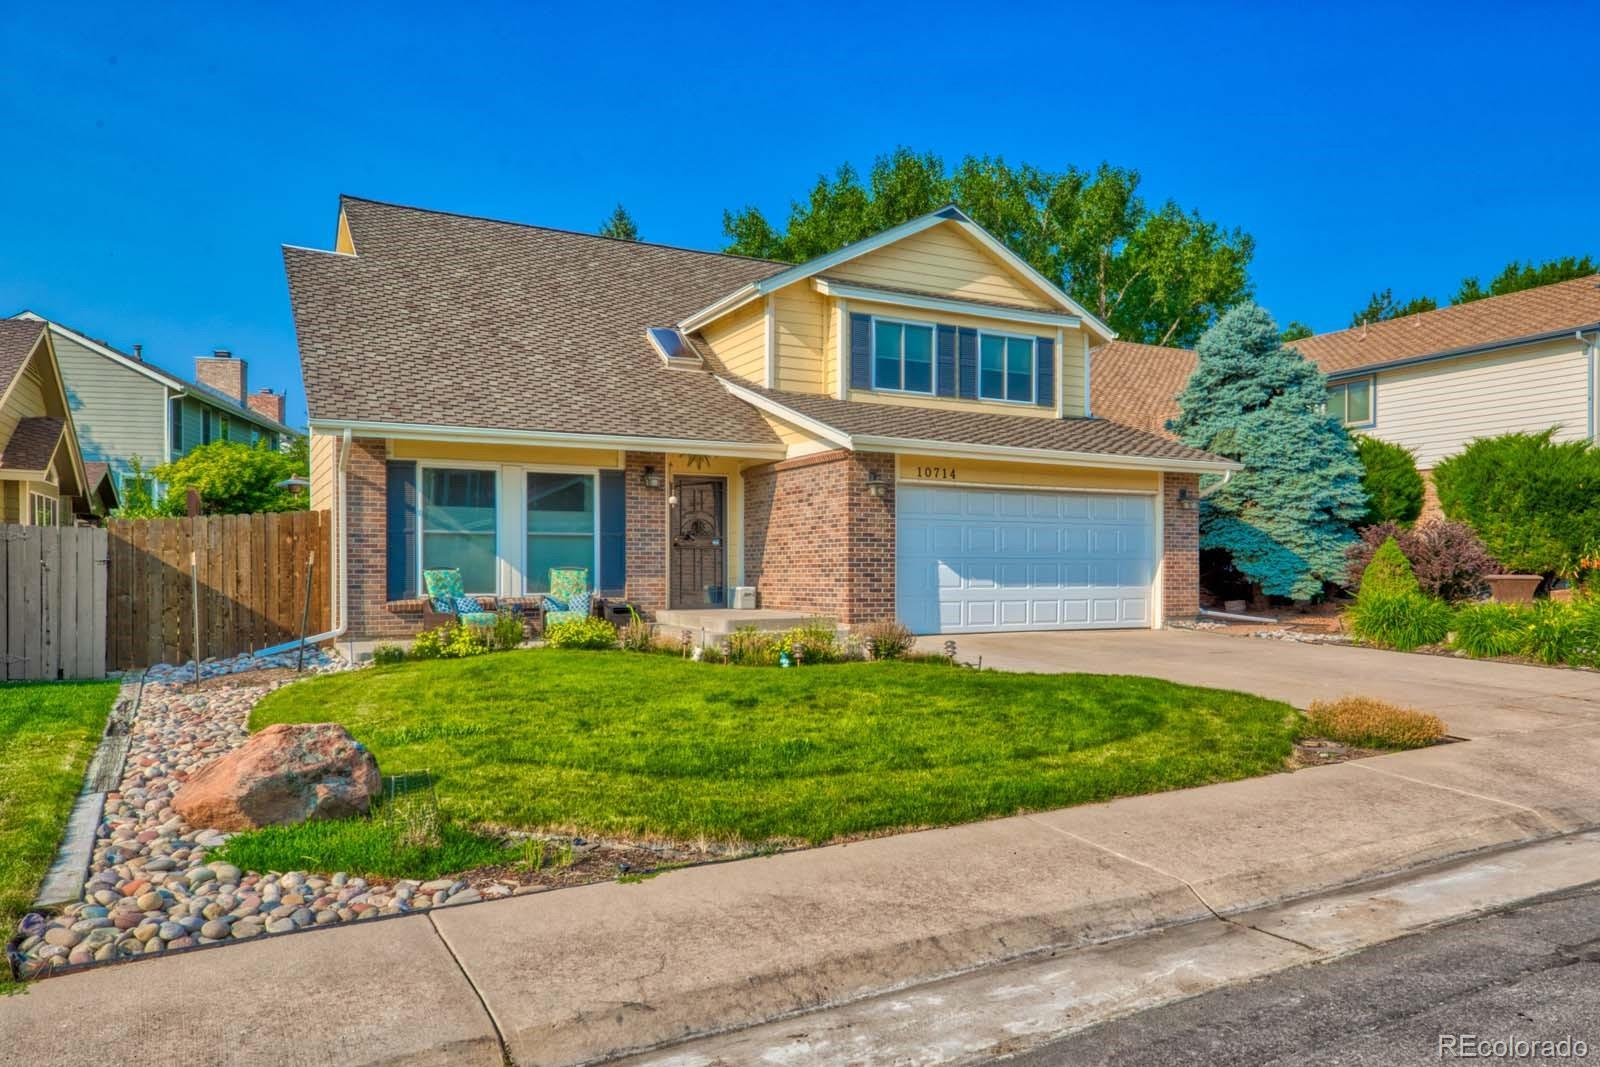 10714 W 85th Place, Arvada, CO 80005 - #: 9088926